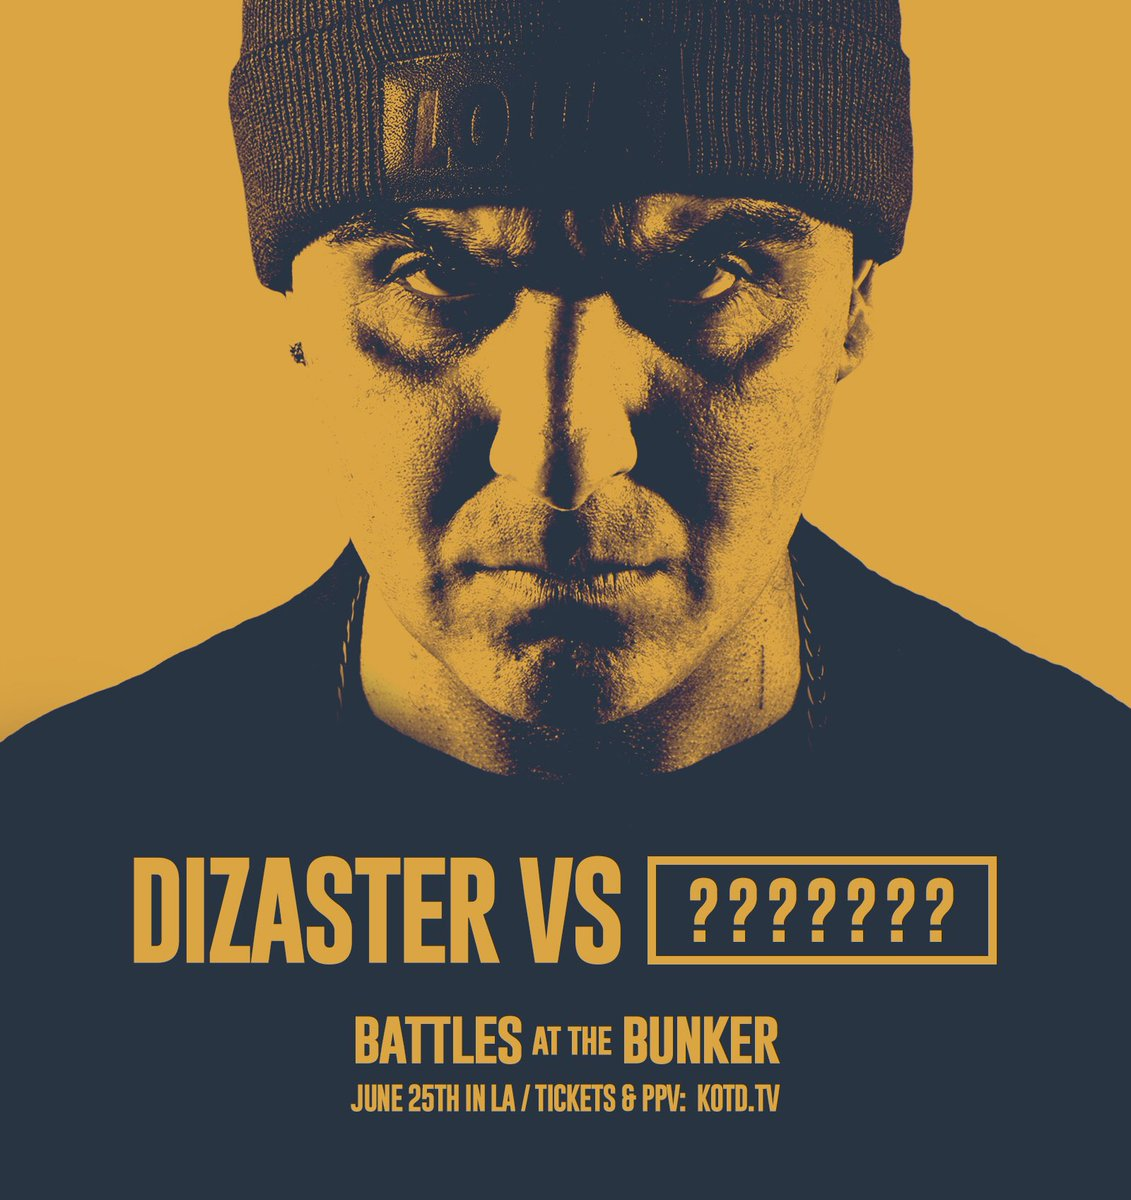 JUST ANNOUNCED: @MRDIZASTER will be battling a mystery top tier opponent at #BATB June 25th in LA. https://t.co/KHYyC7QtNU